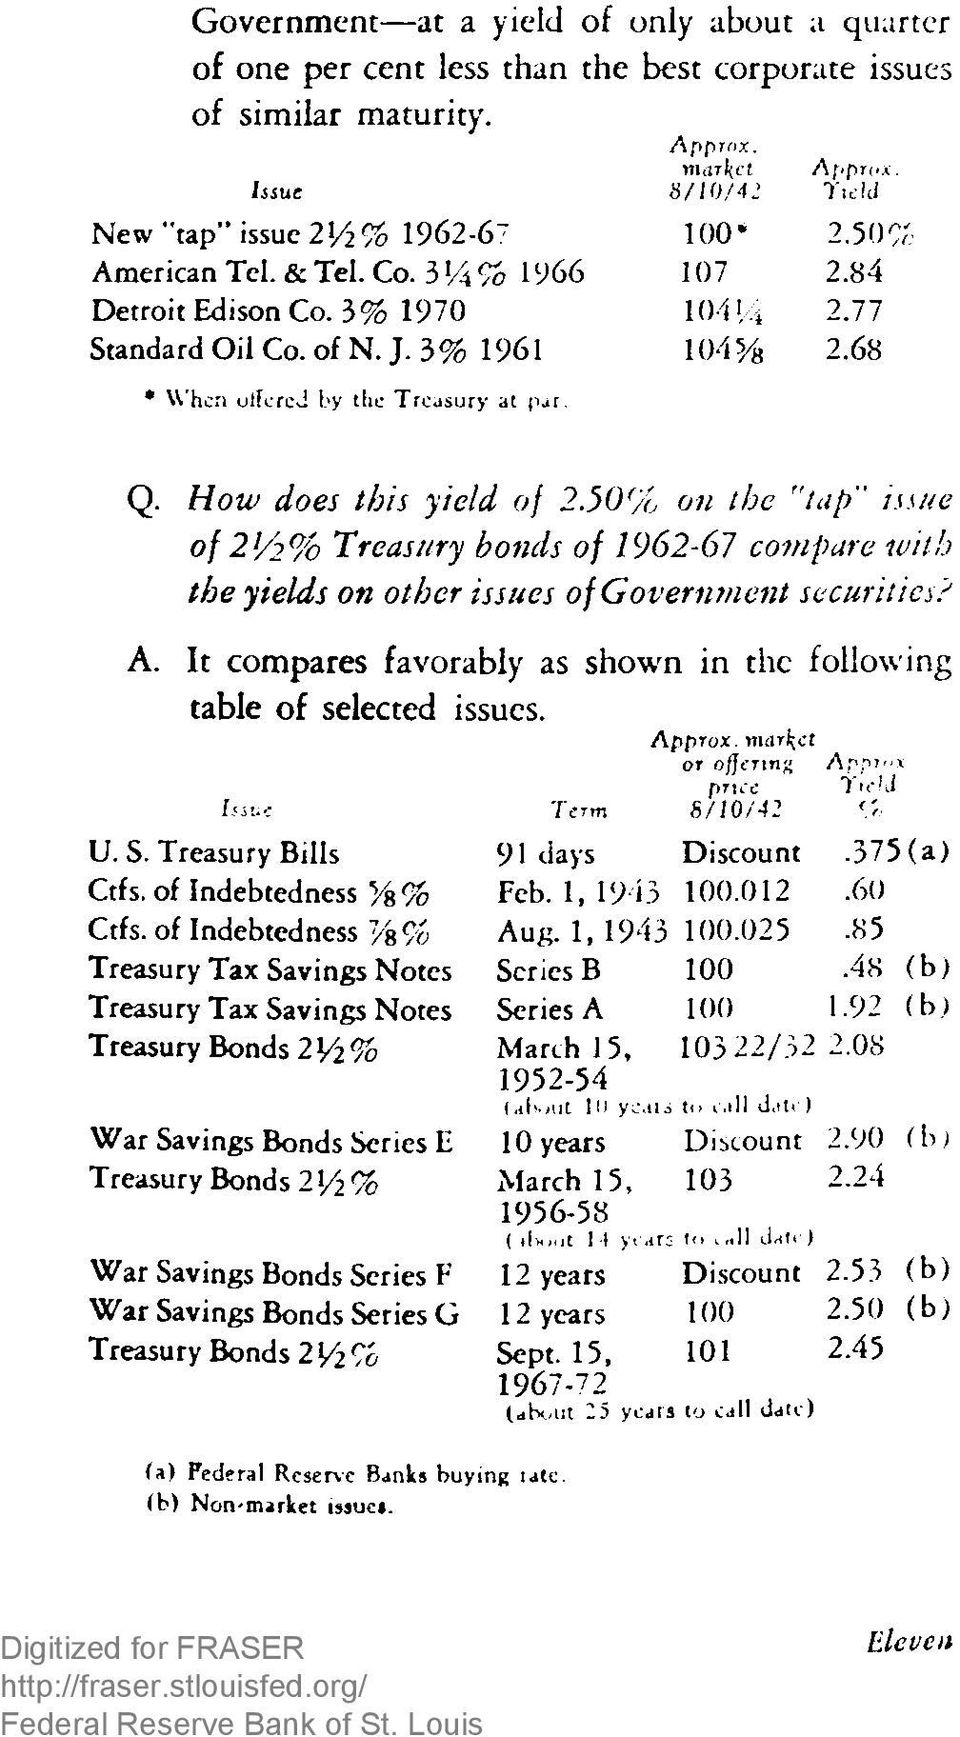 "68 Q. How does this yield of 2.50% on the ""tap issue of 2V2% Treasury bonds of 1962-67 compare with the yields on other issues of Government securities? A."